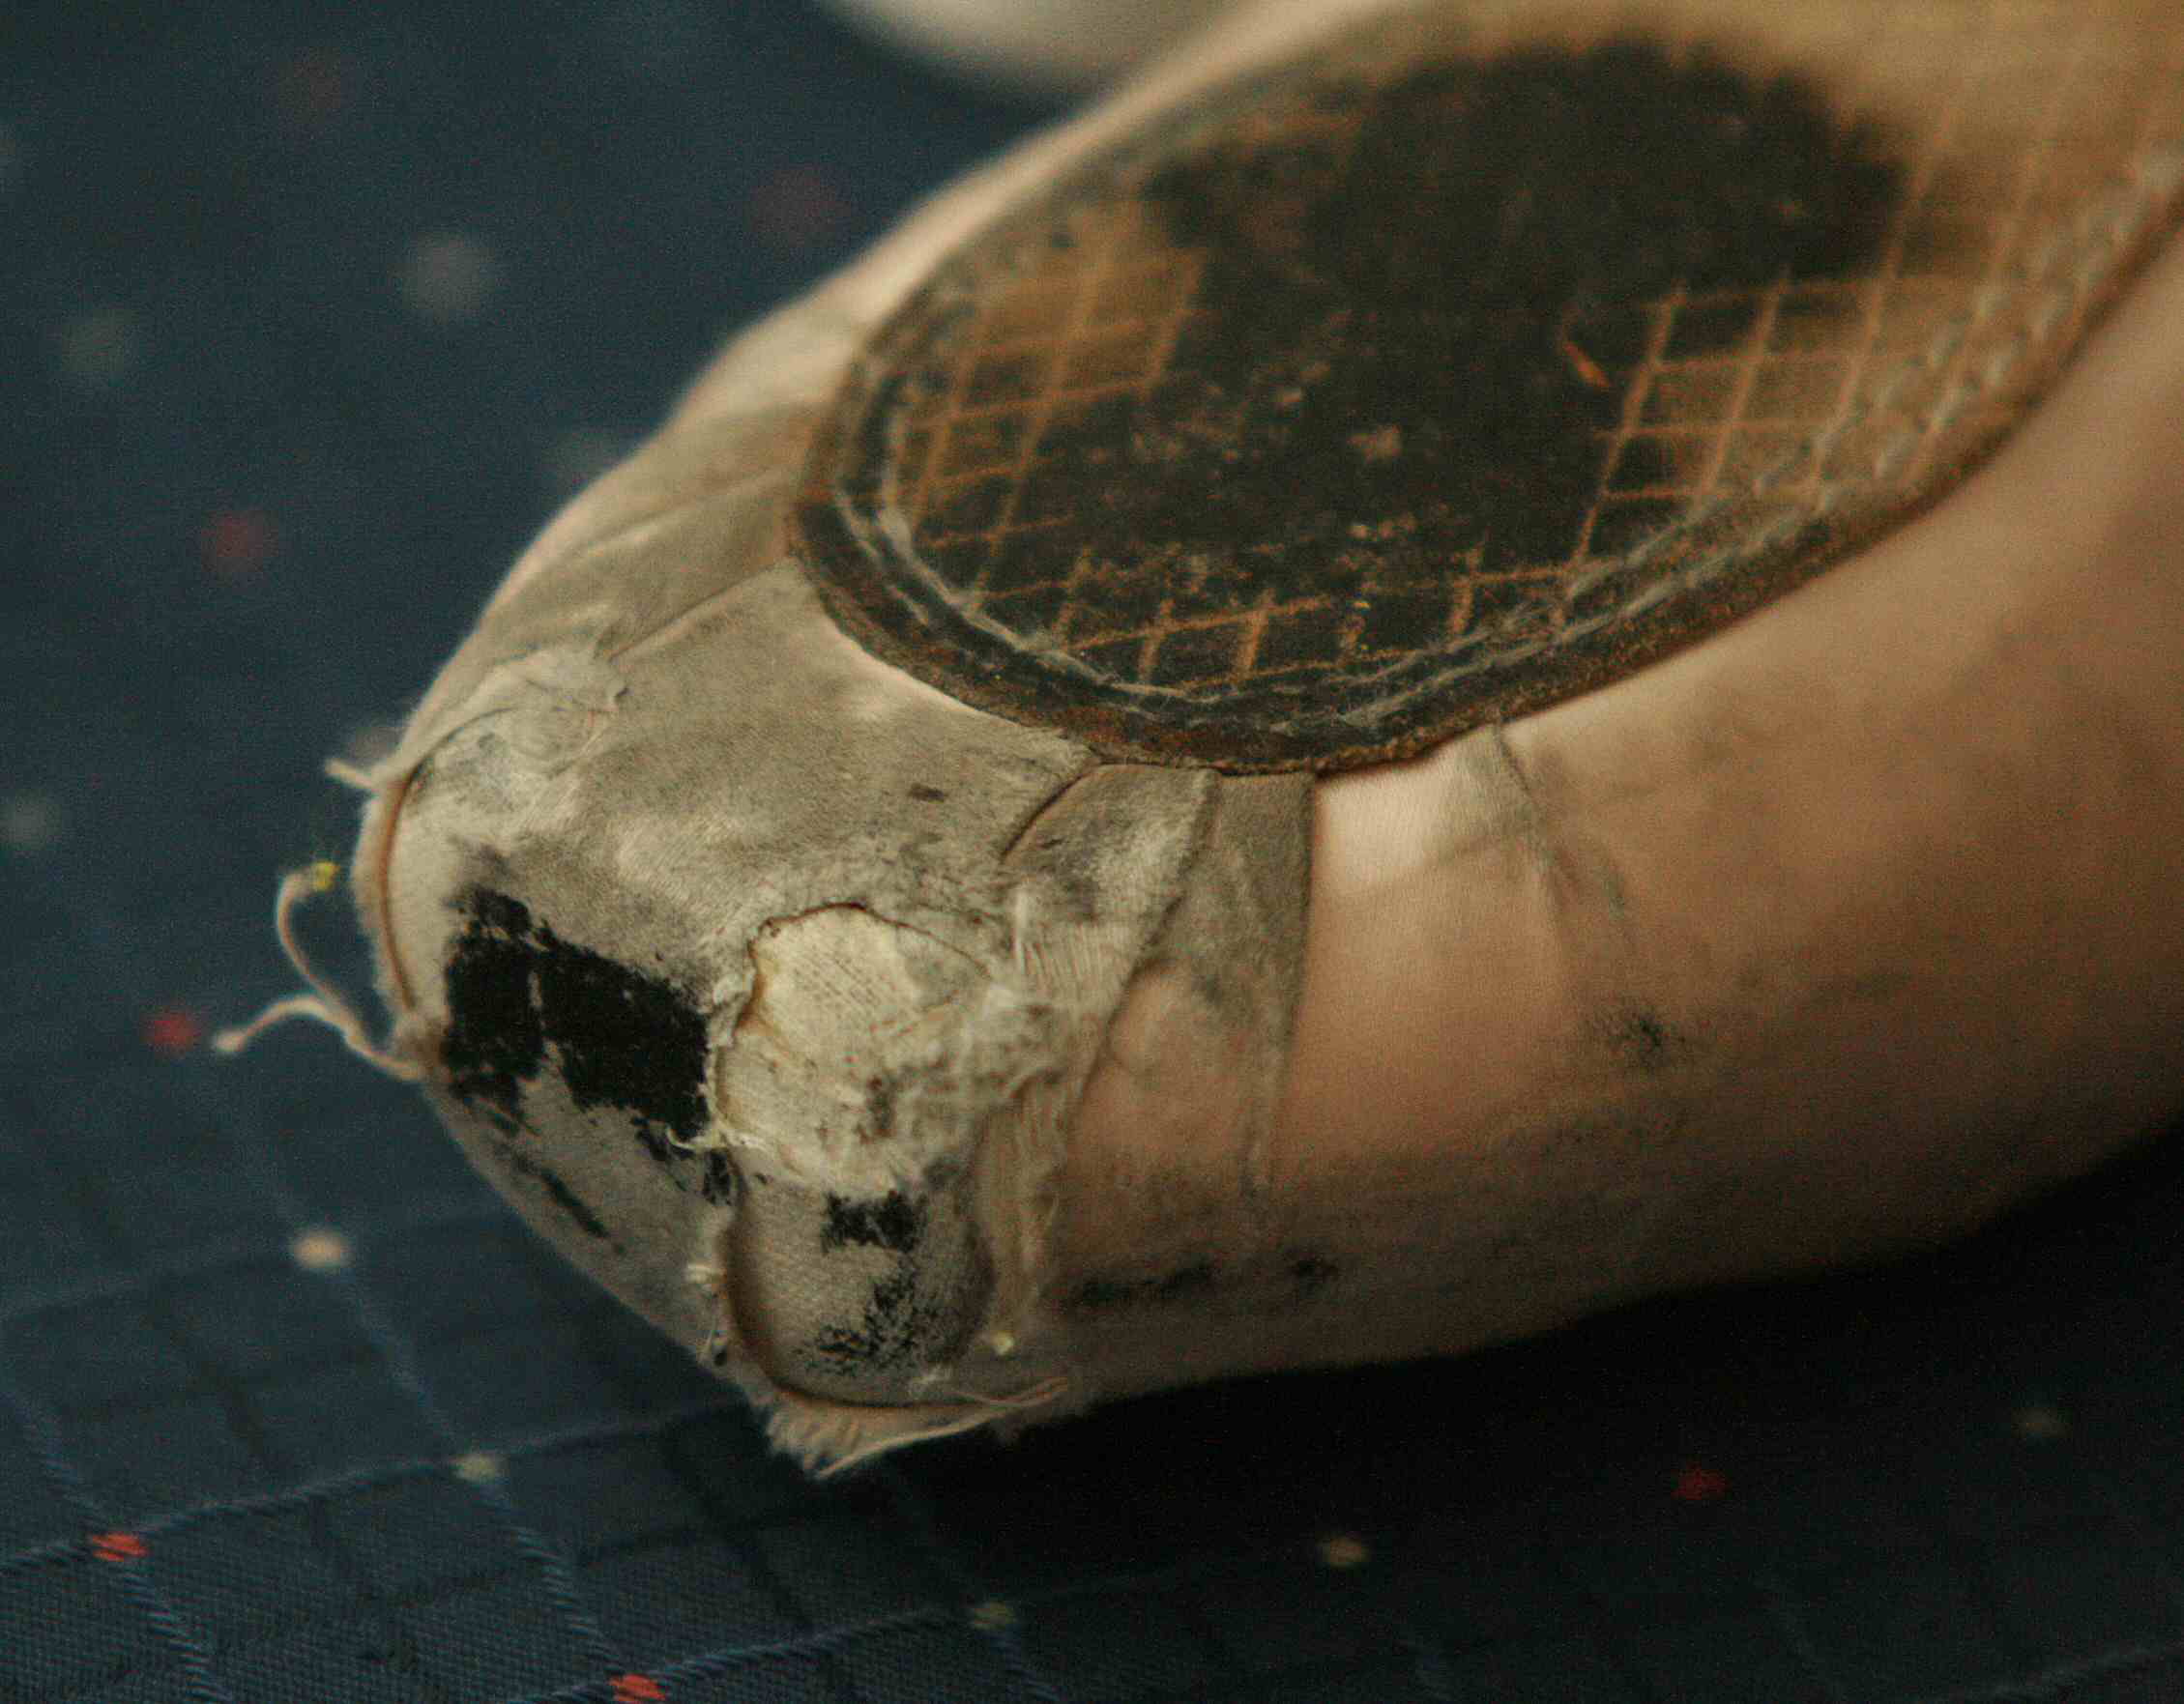 Ask Amy: How to Superglue Pointe Shoes - Pointe